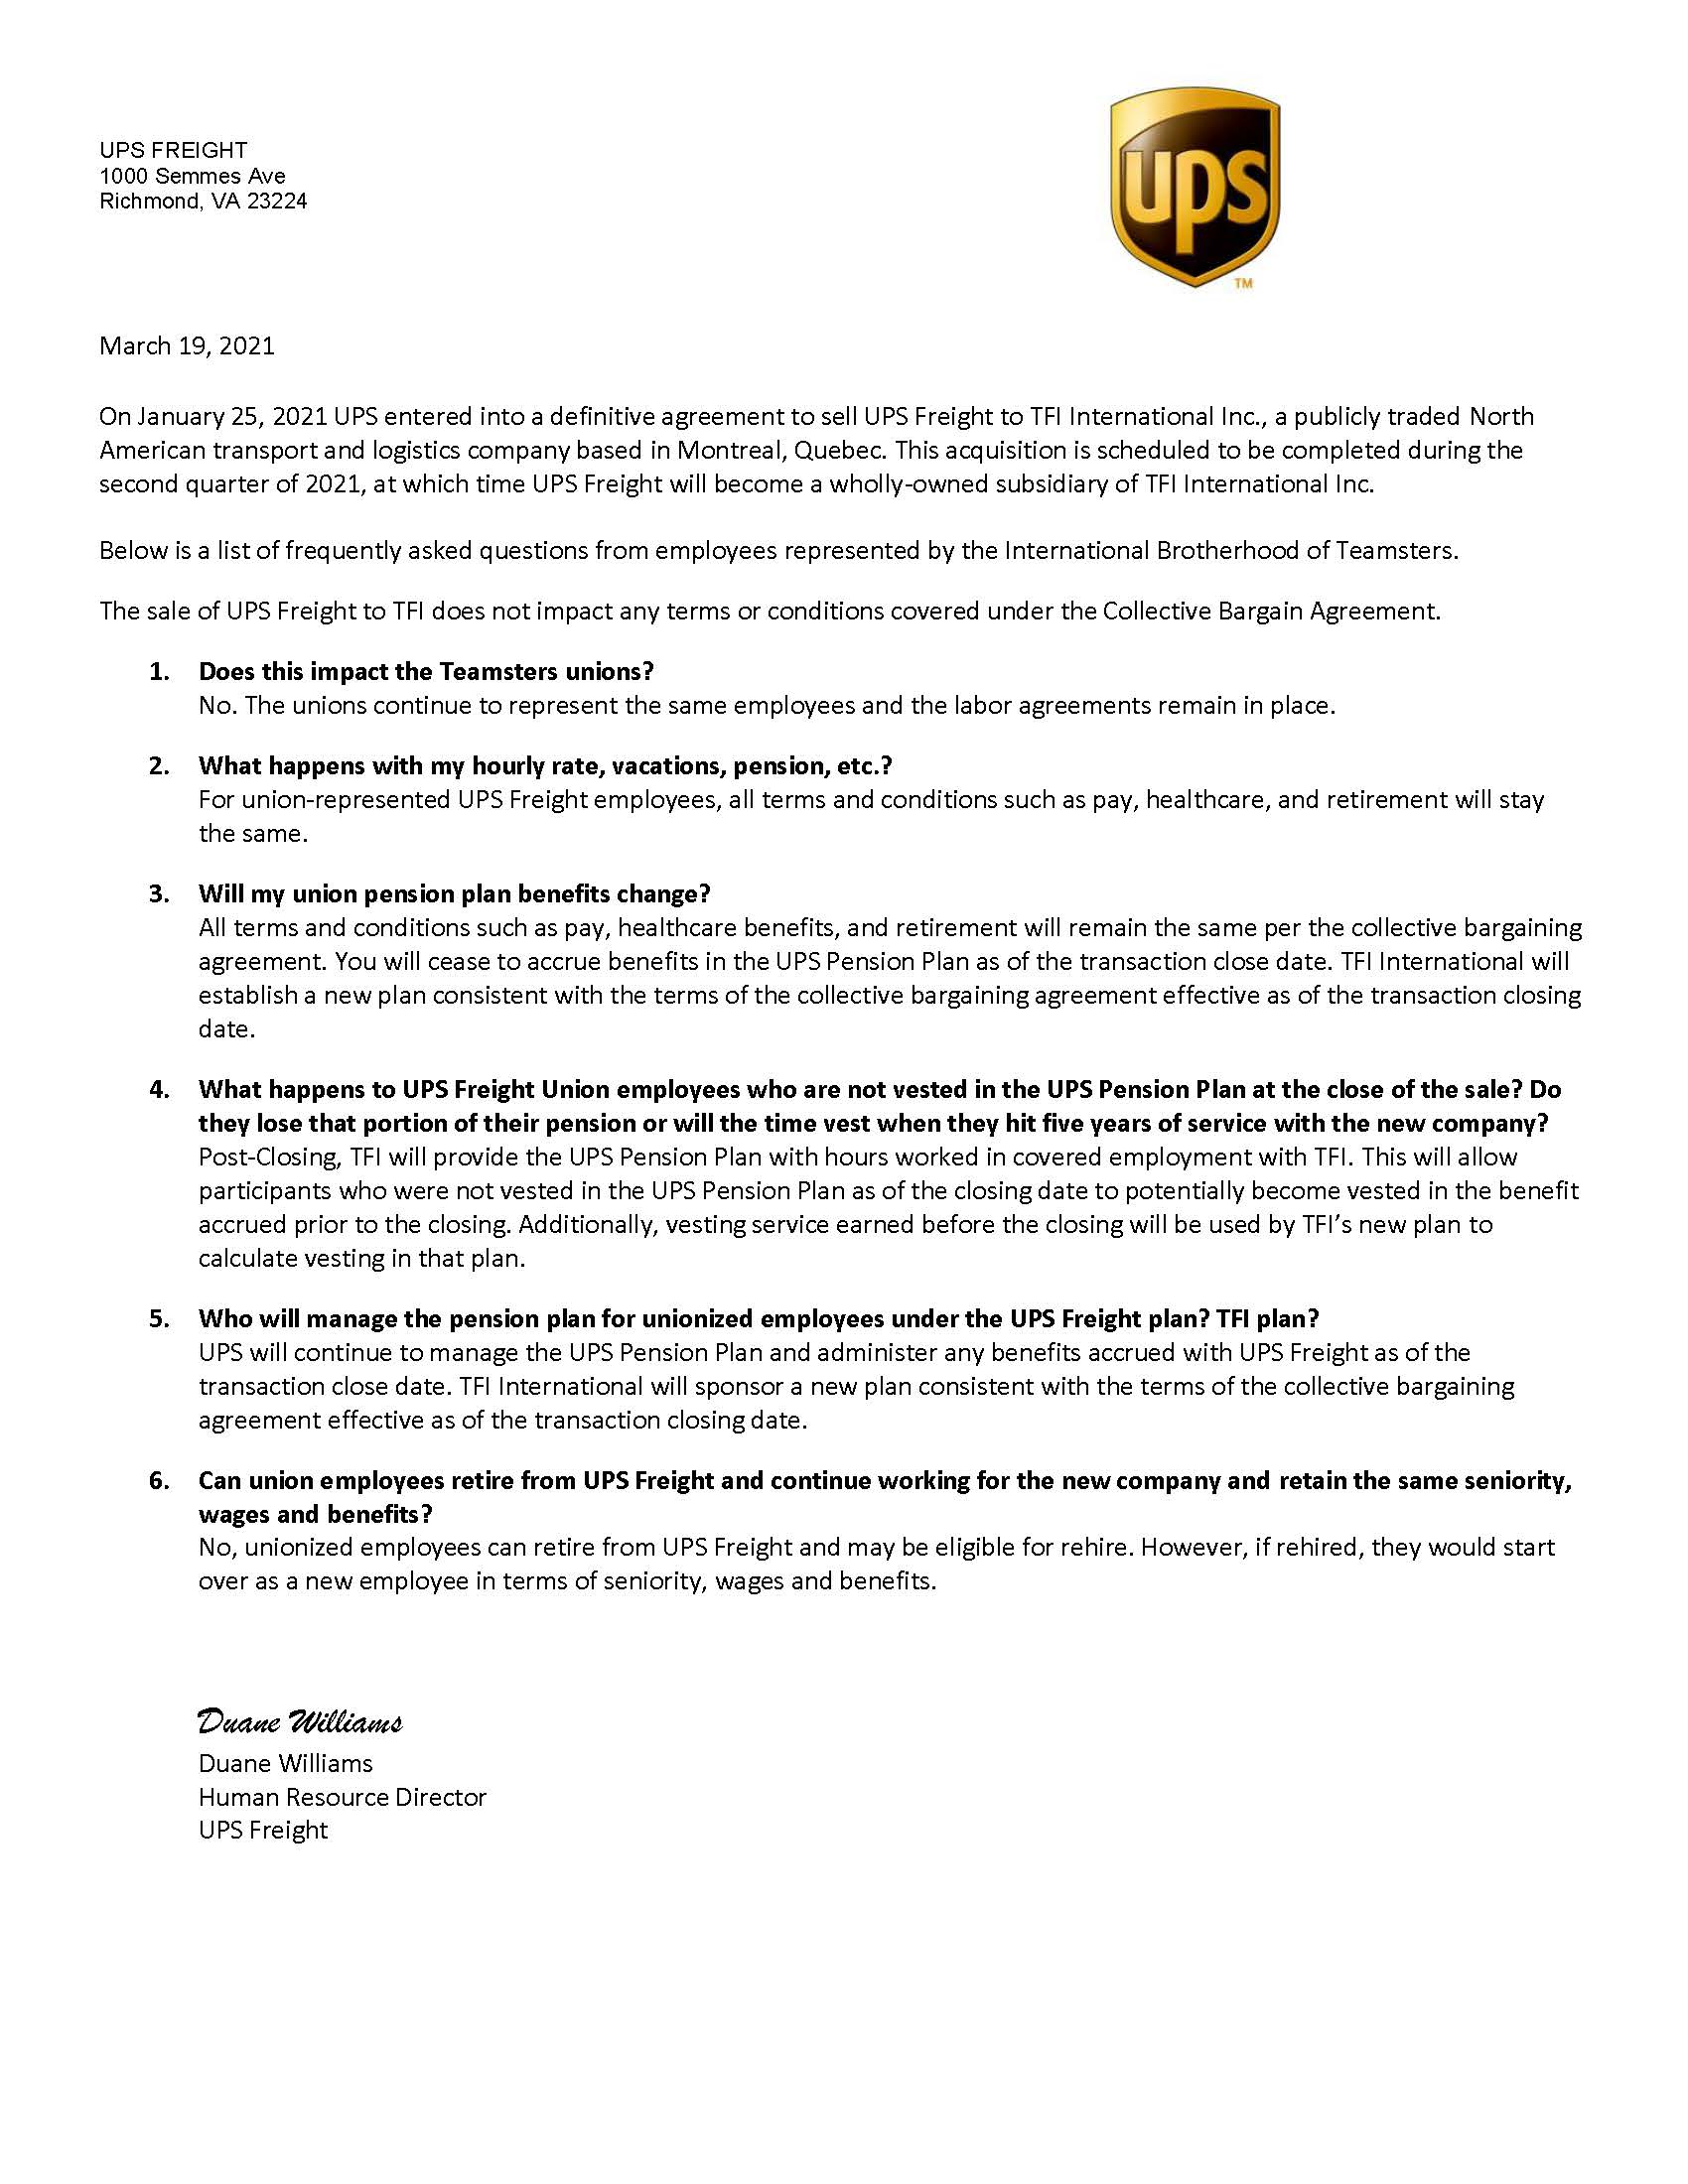 UPS_Freight_to_TFORCE_Freight_Transition_Letter_to_Teamsters.jpg